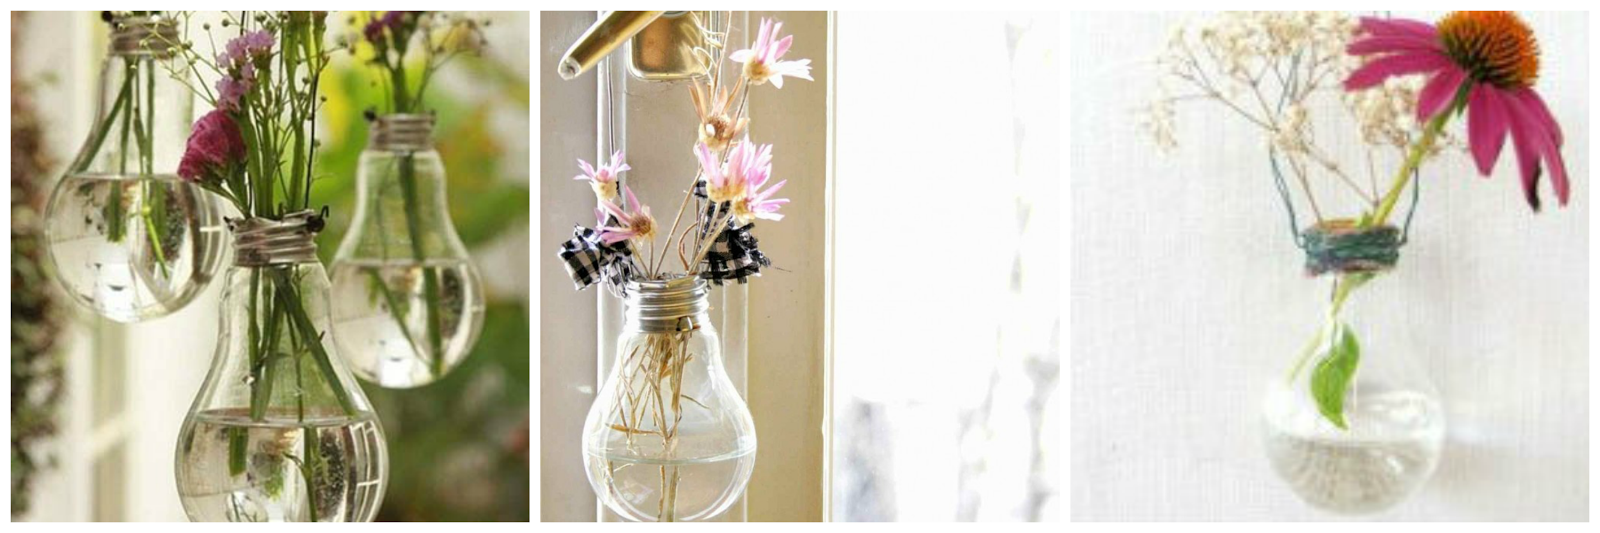 LIGHT BULB FLOWER POT FLORERO CON UNA BOMBILLA